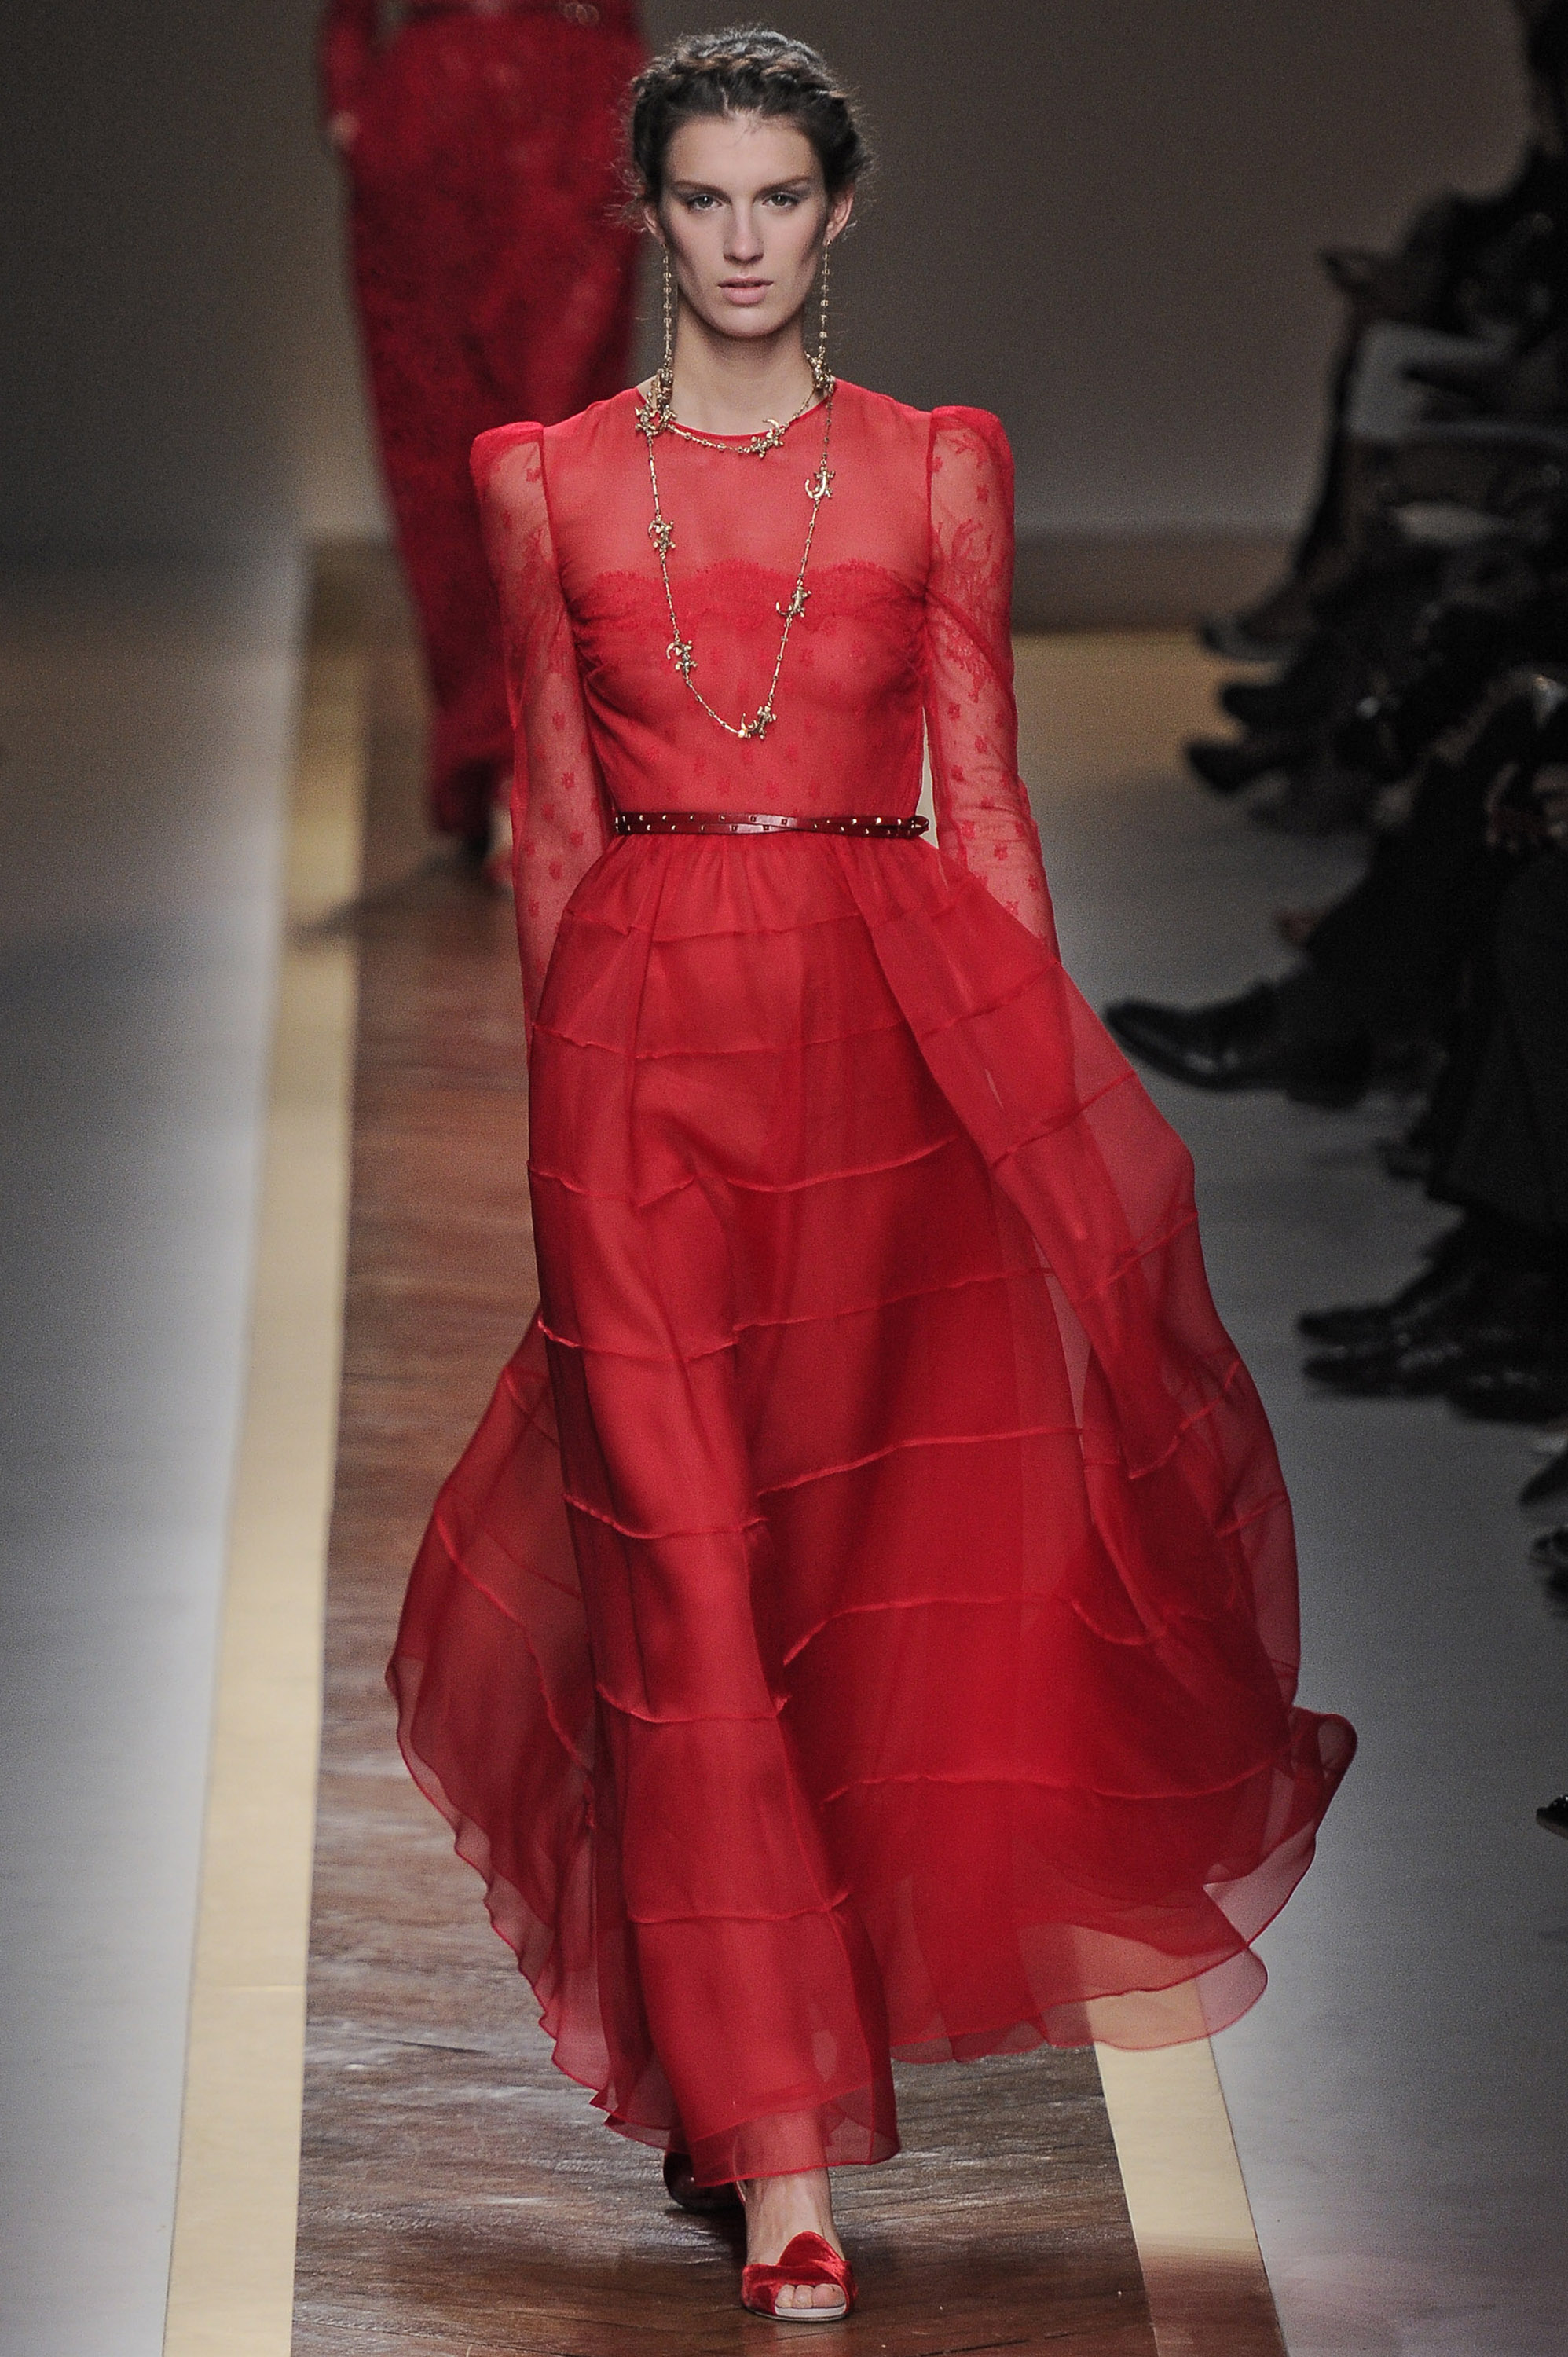 review and pictures of valentino runway show at 2012 spring summer paris fashion week popsugar